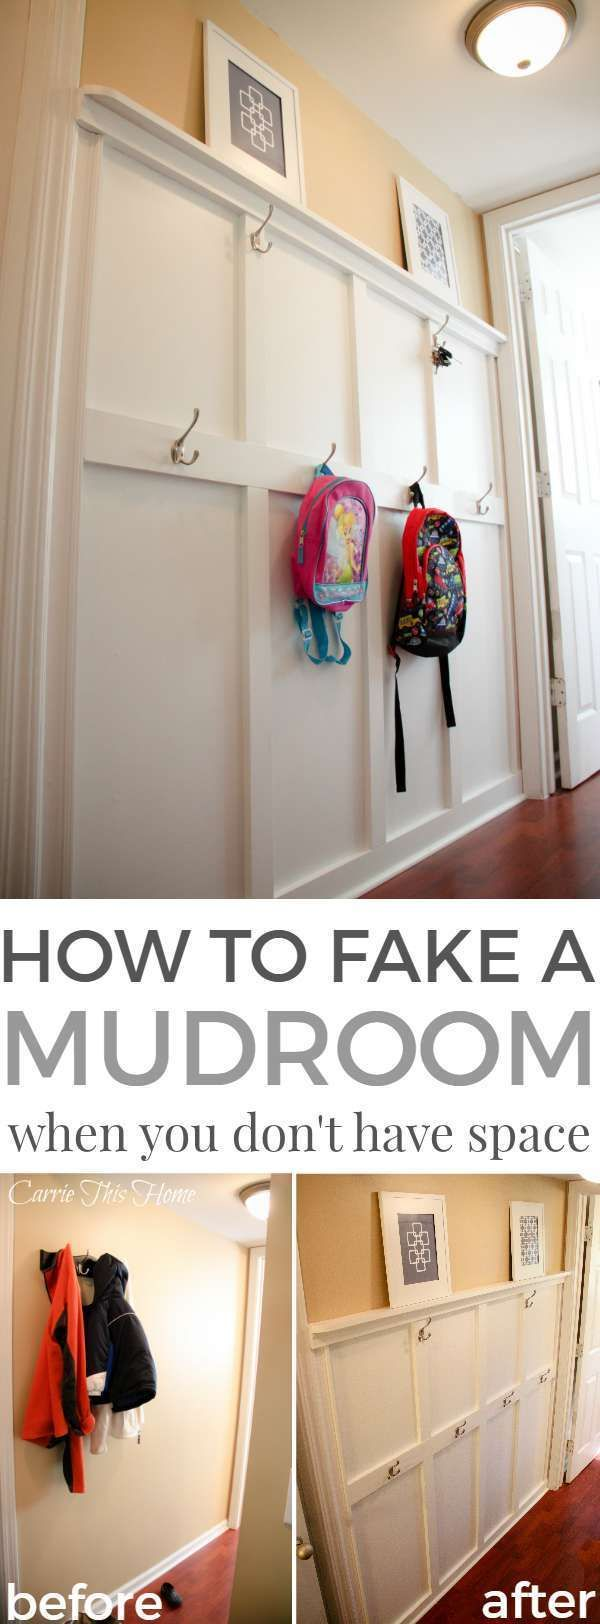 How To Fake A Mudroom {When You Don't Have The Space} #storagesolutions